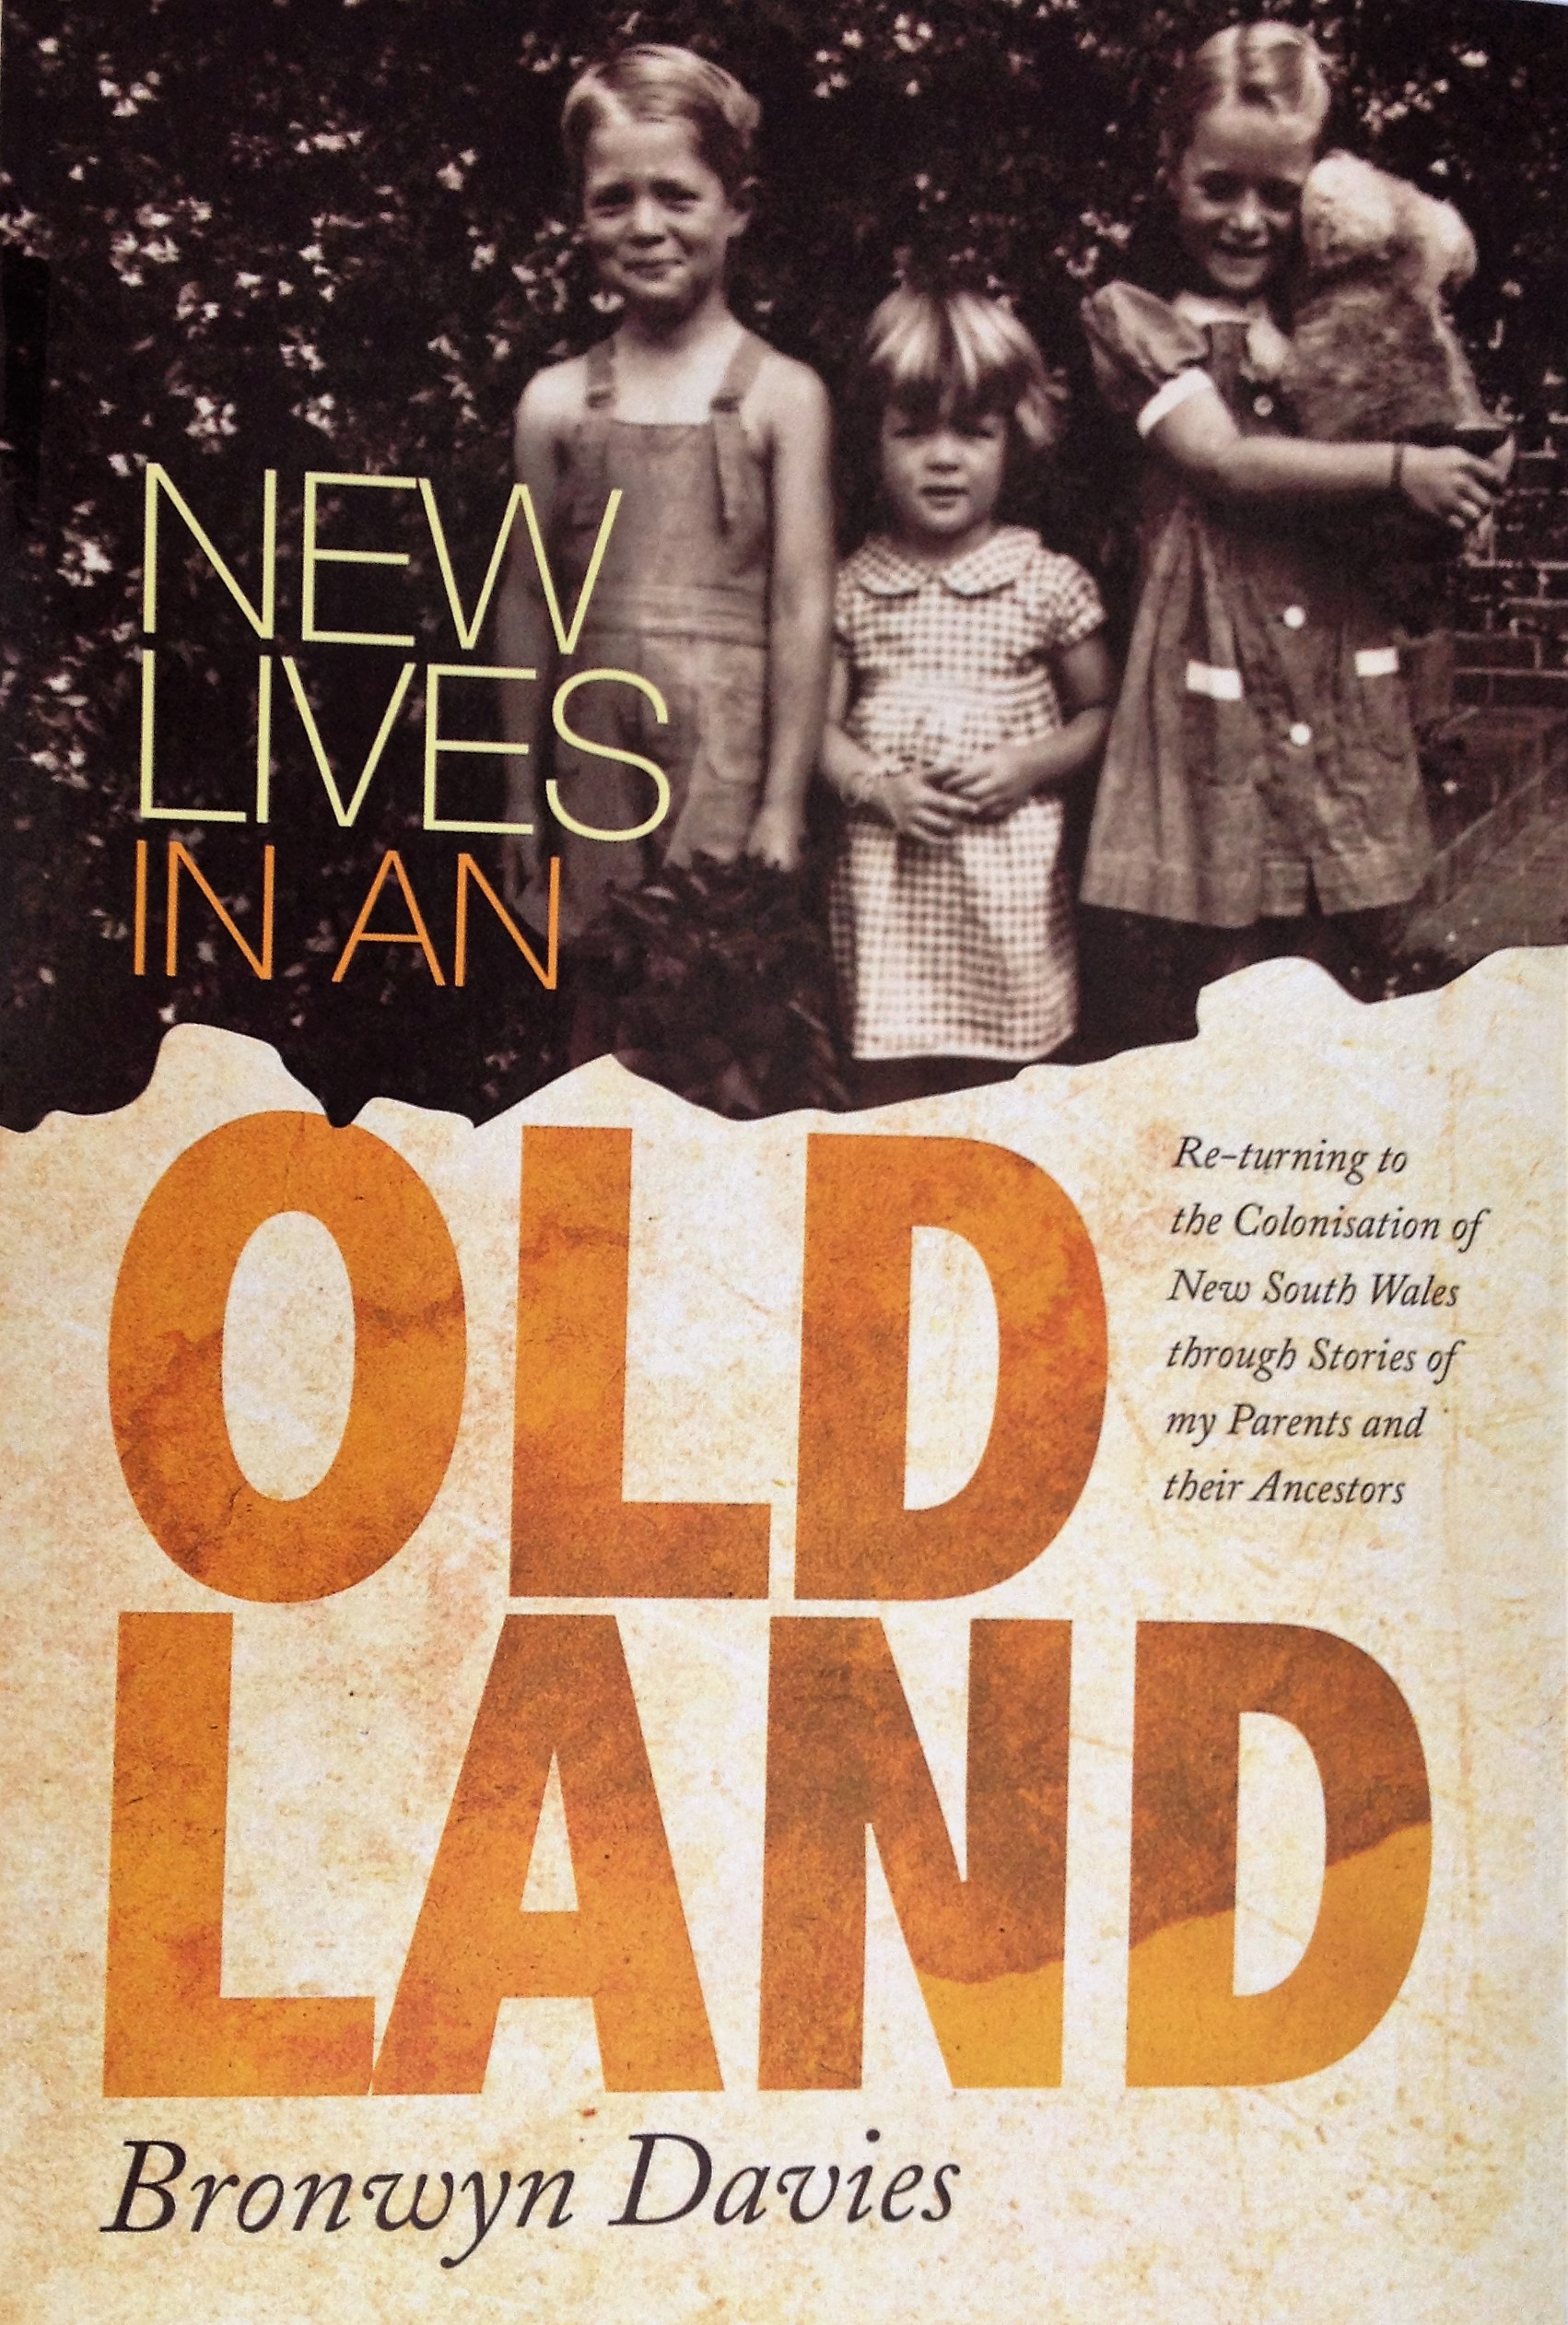 New Lives in an Old Land